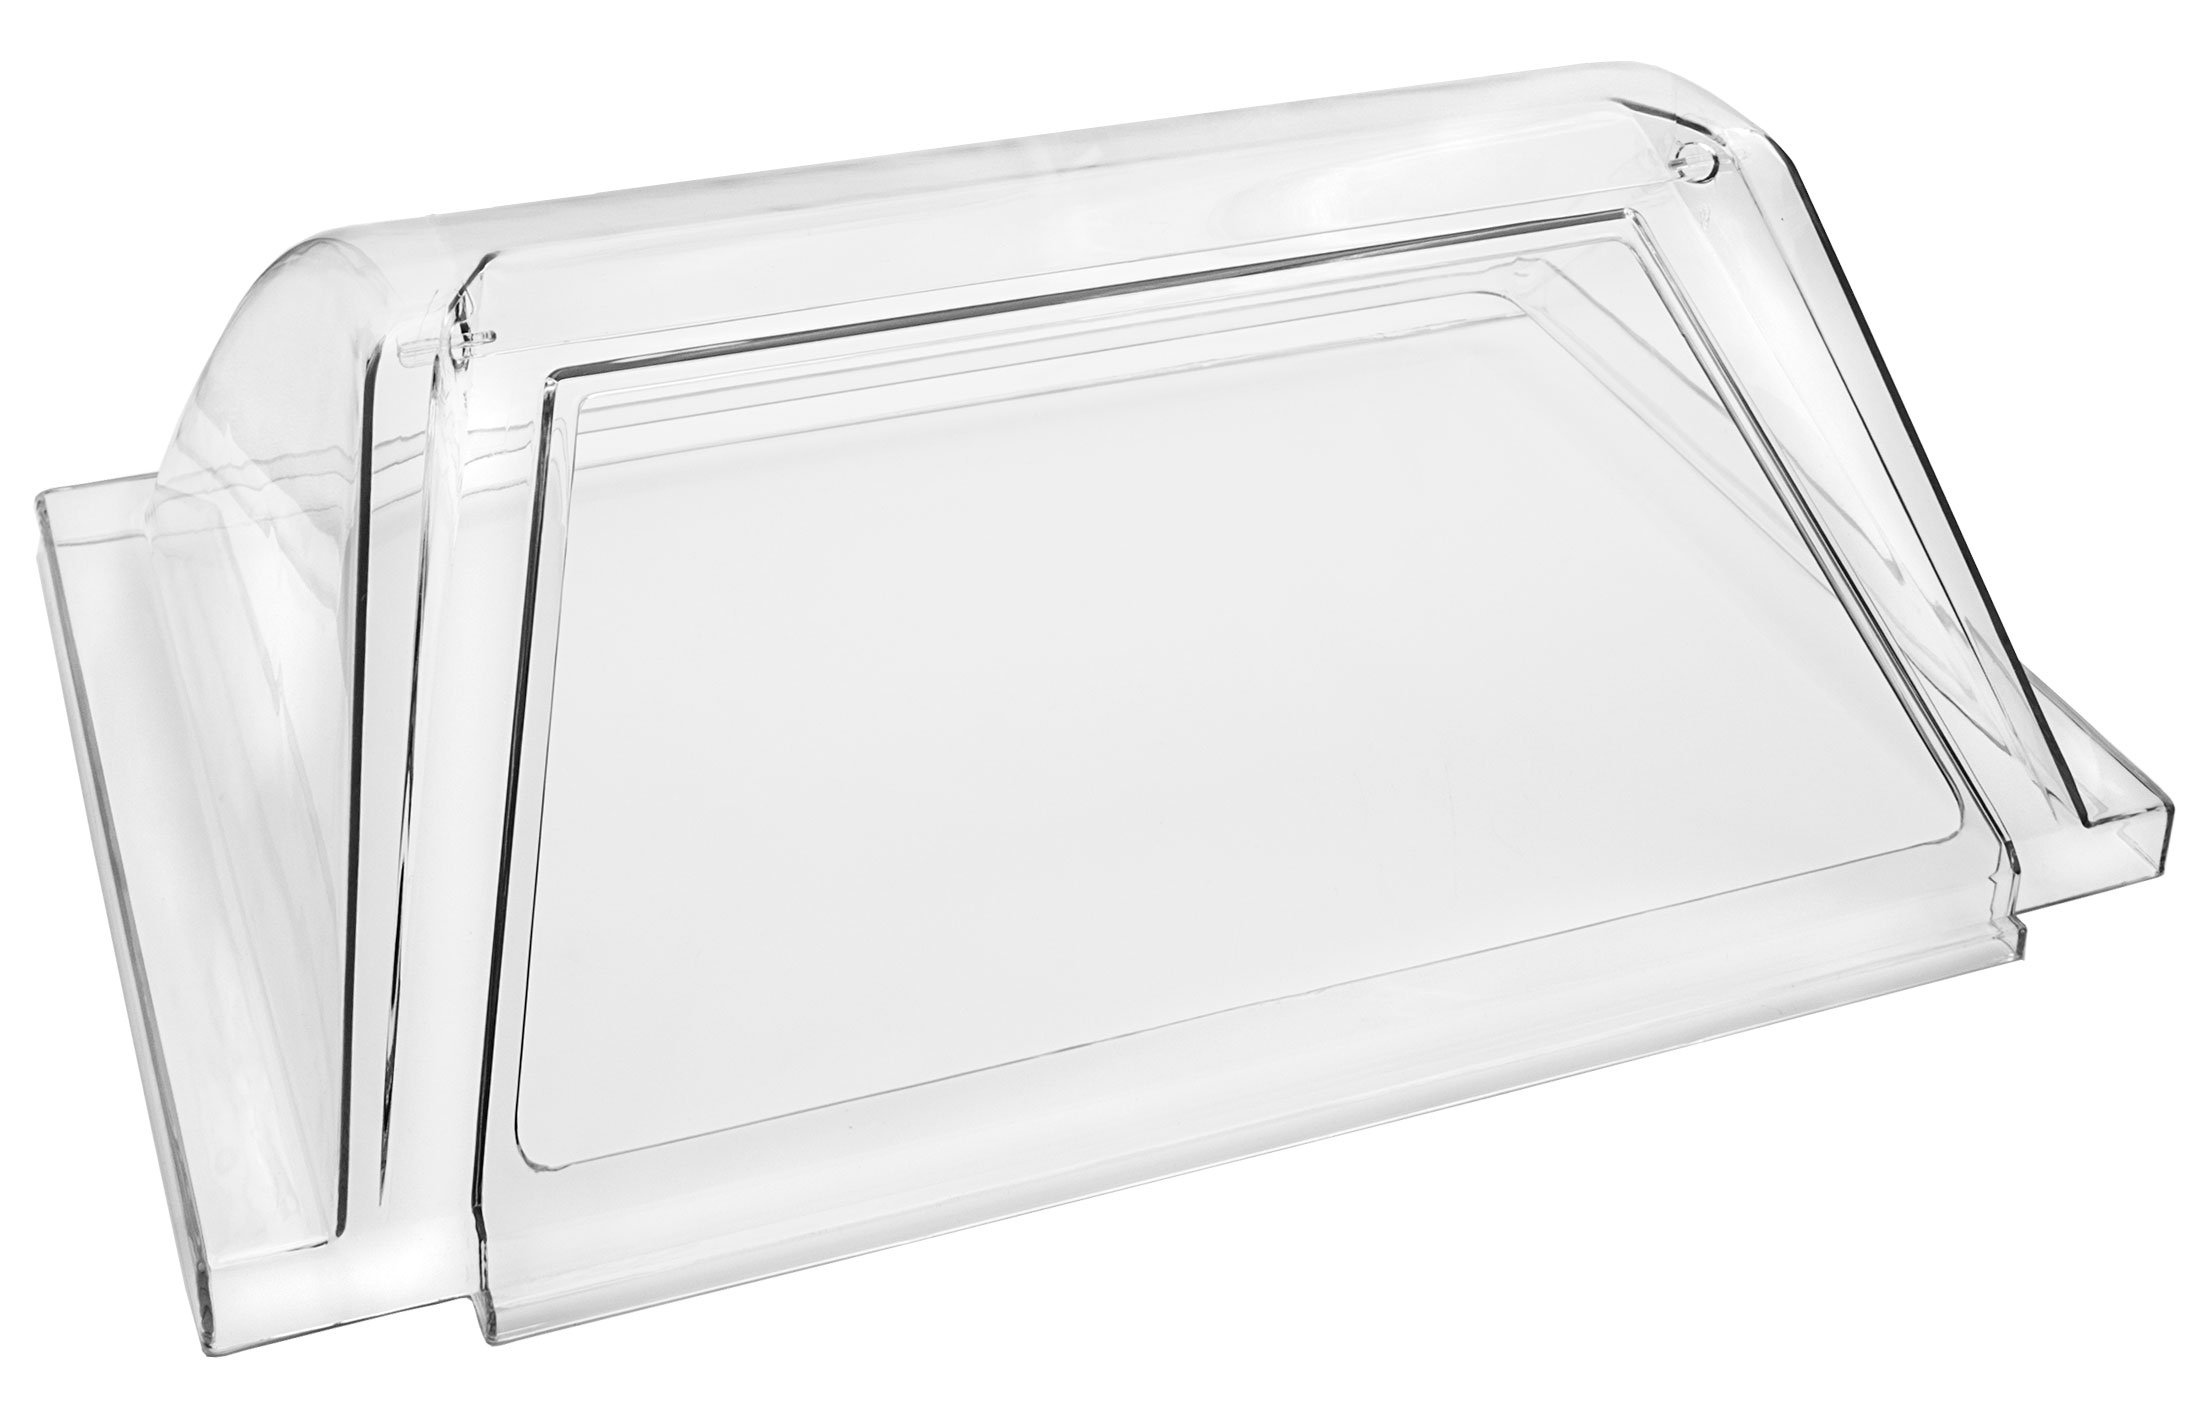 Concession Land - Clear Plexiglass Hot Dog Roller Grill Cover